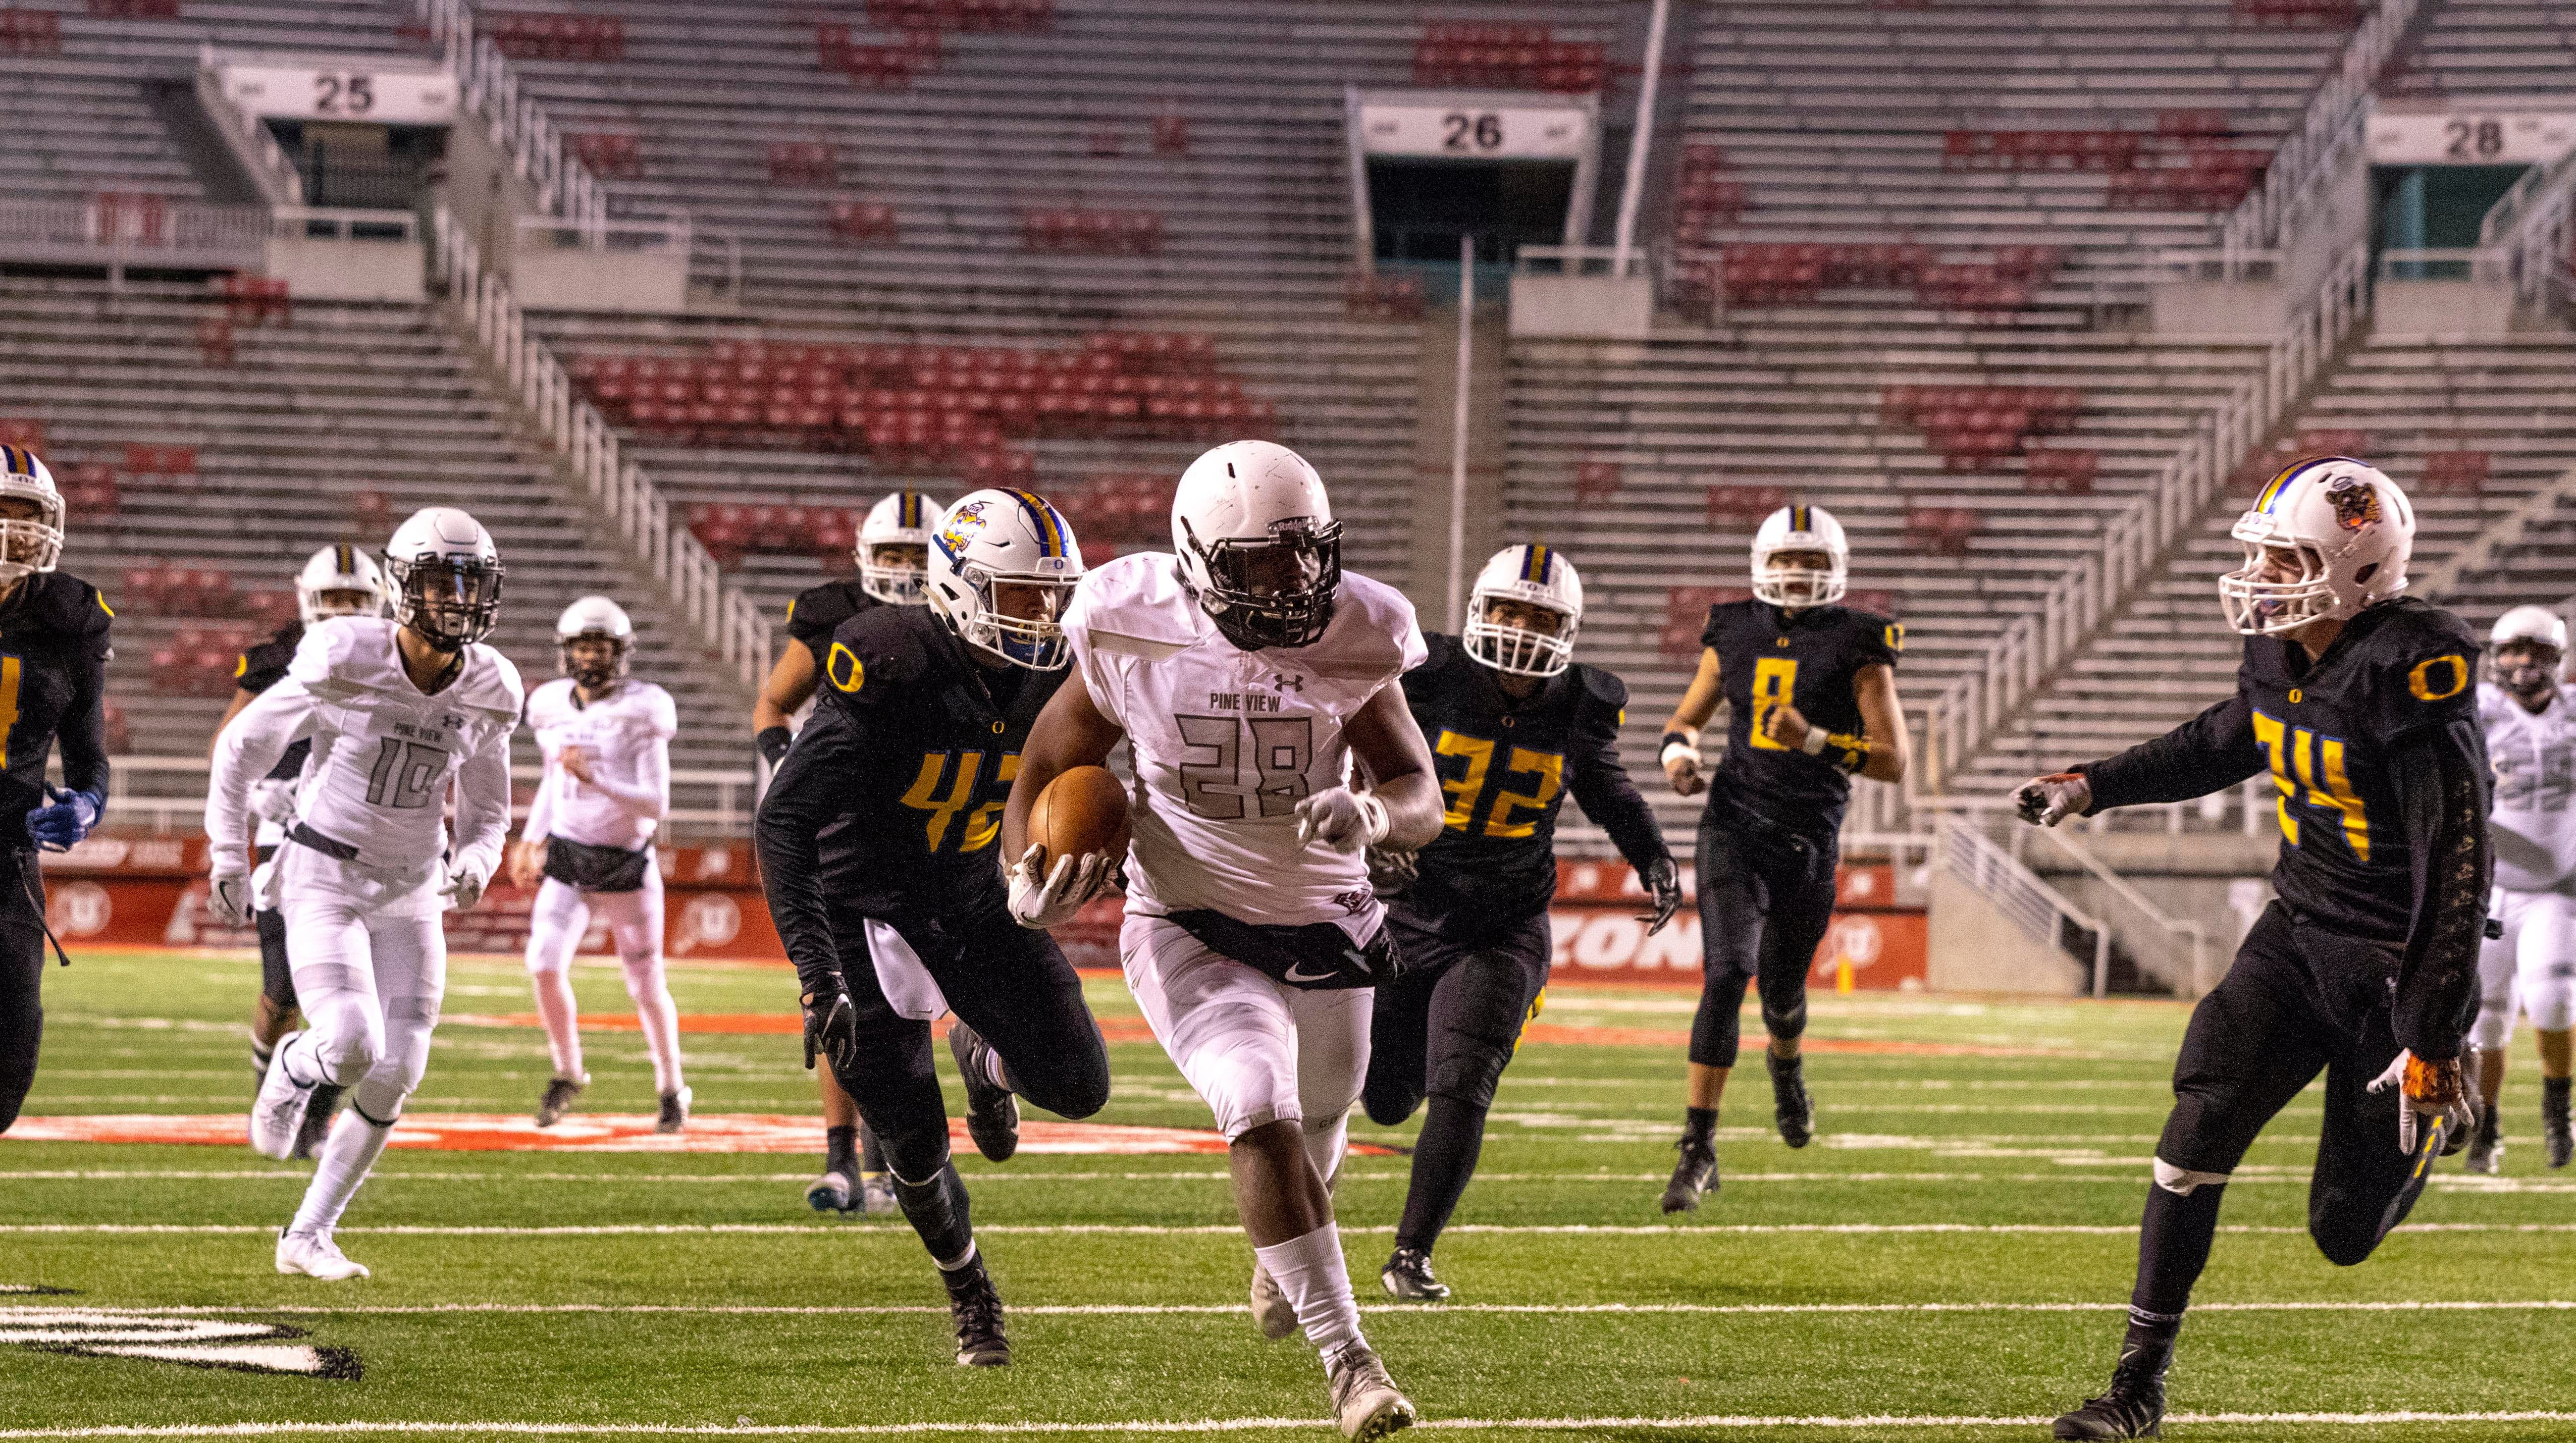 Pine View running back Tosh Wright (28) rushes for a touchdown during Friday's playoff game against Orem in Salt Lake City, Nov. 9, 2018.